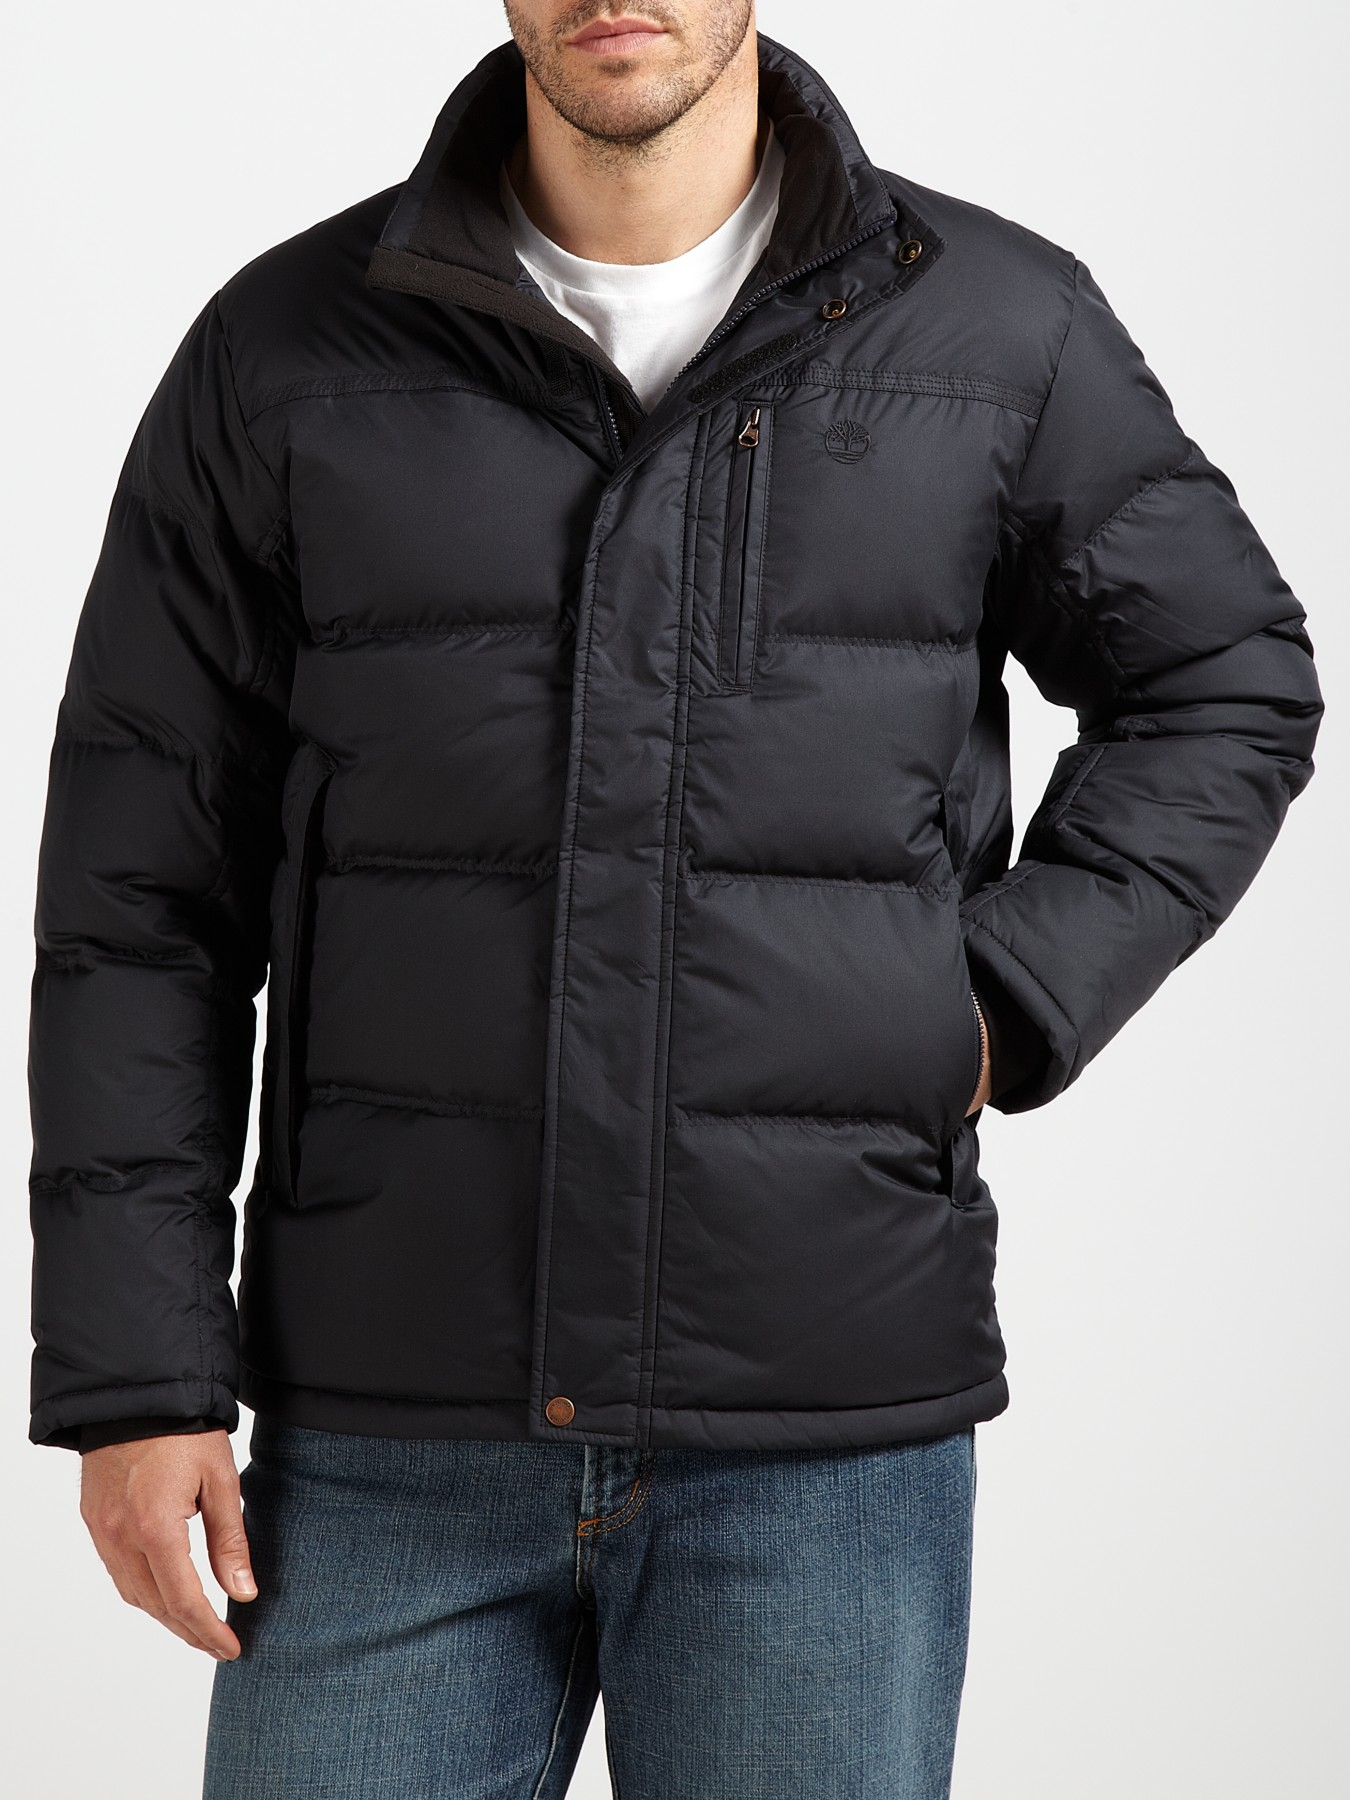 Timberland Synthetic Reedville Down Jacket In Black For